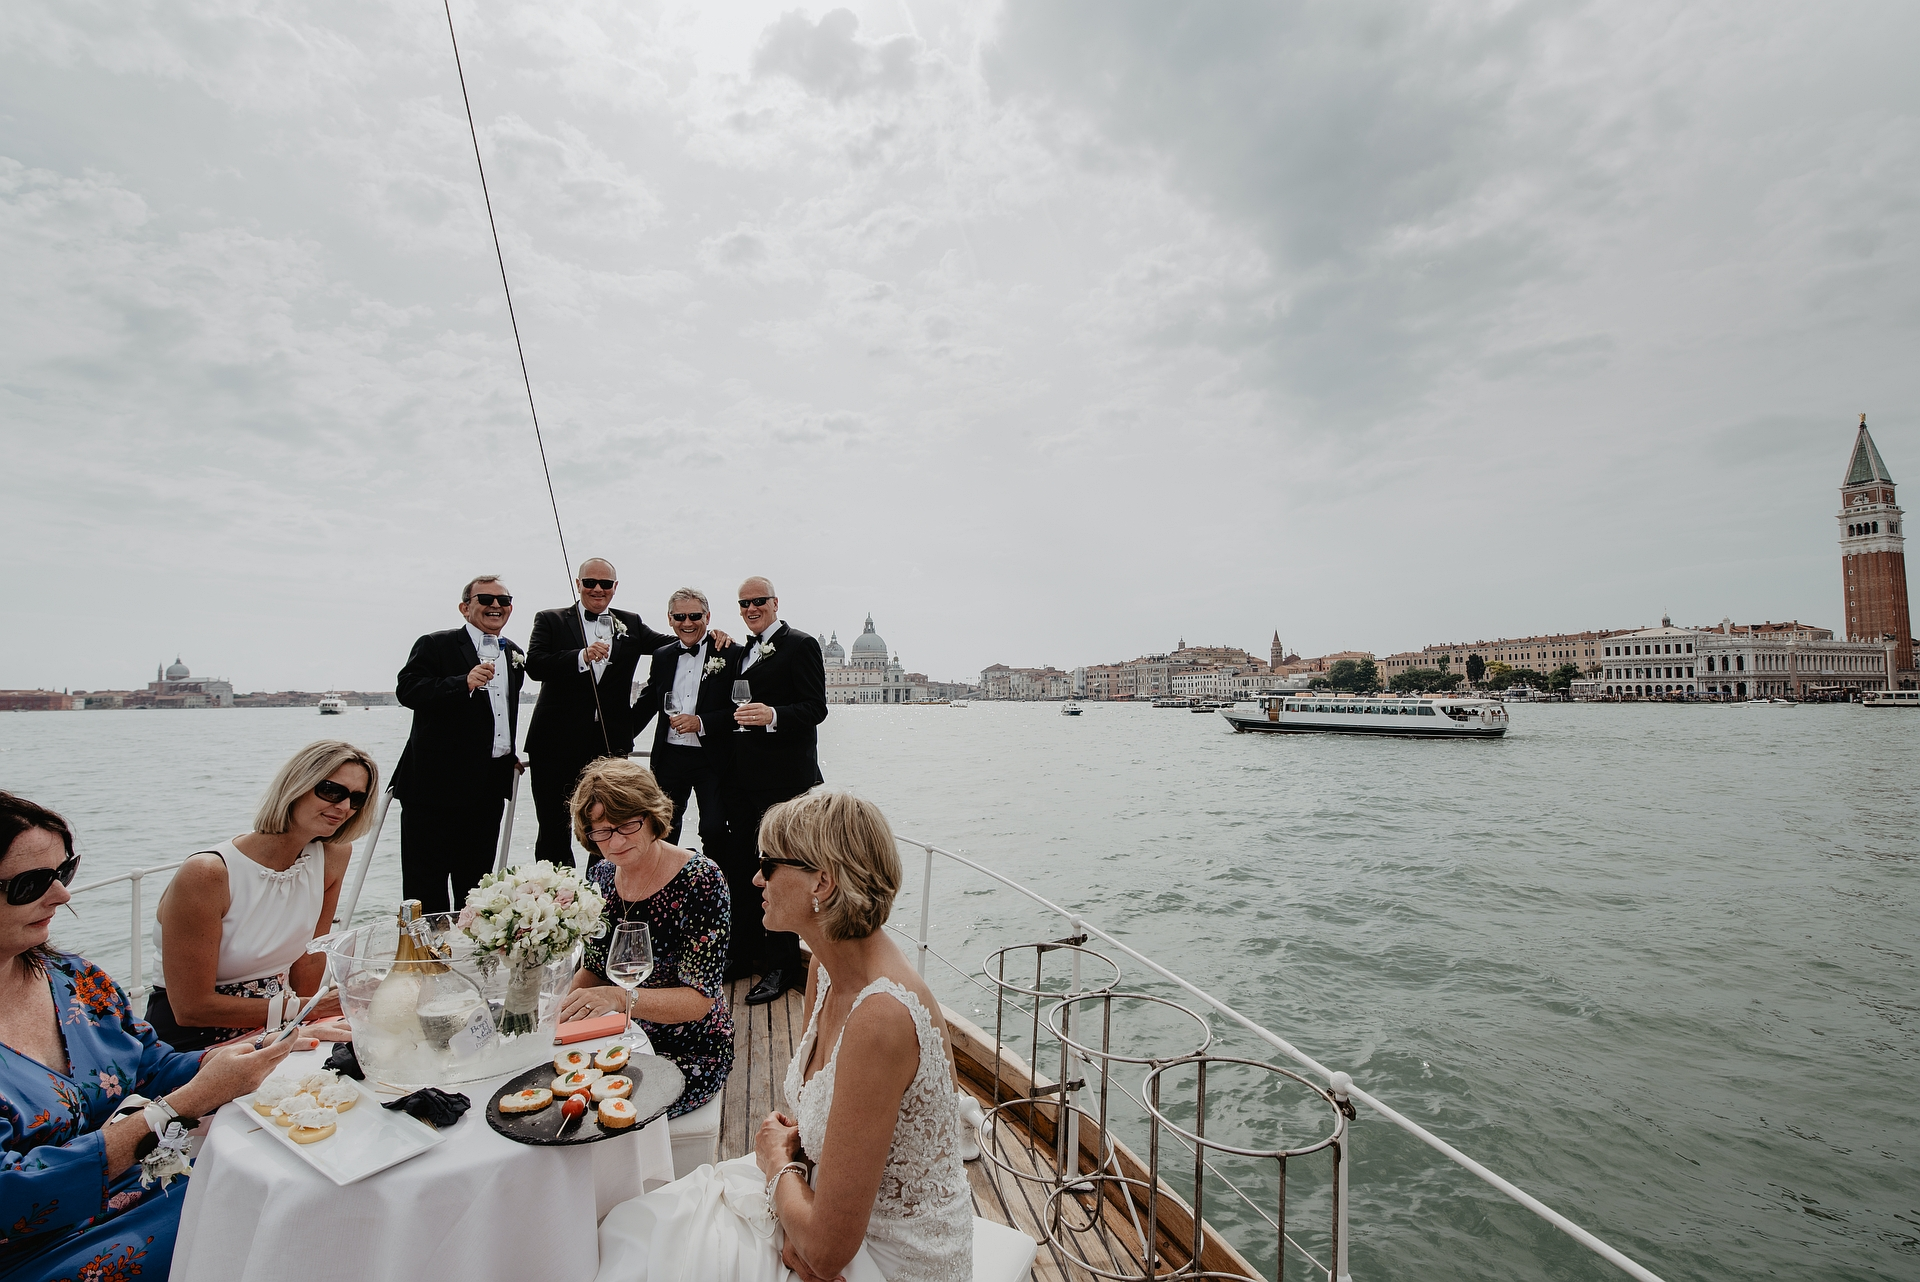 Silver Yacht Private Boat - Venice Lagoon, Italy Elopement Photos | sailing through the magnificent lagoon of Venice, they will celebrate the wedding reception and dinner